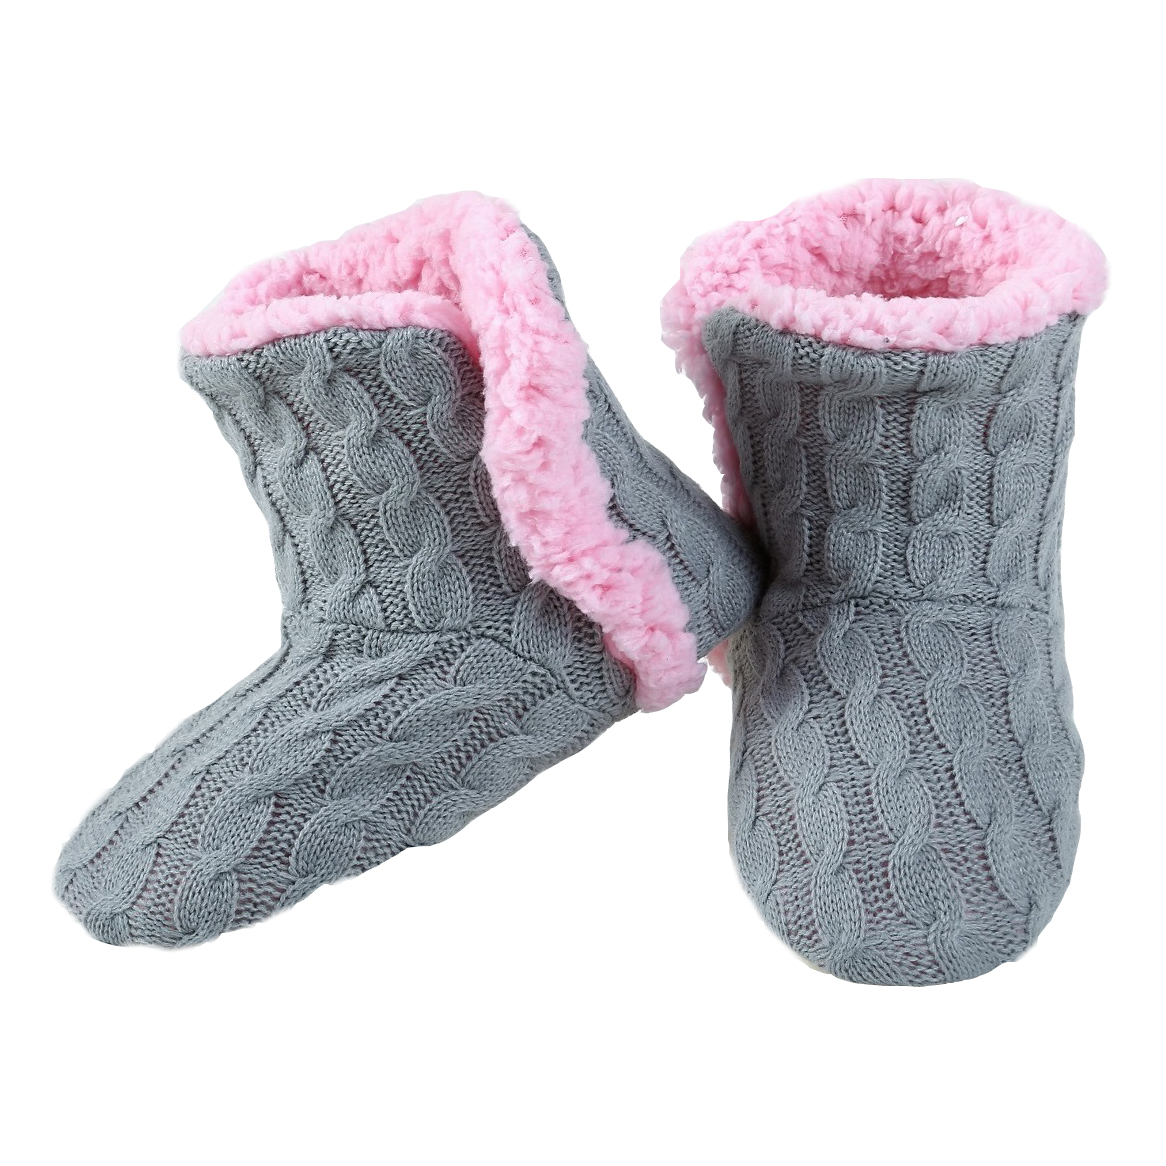 Yelete Womens Cable Knit Slippers House Booties Soft Sherpa Lining